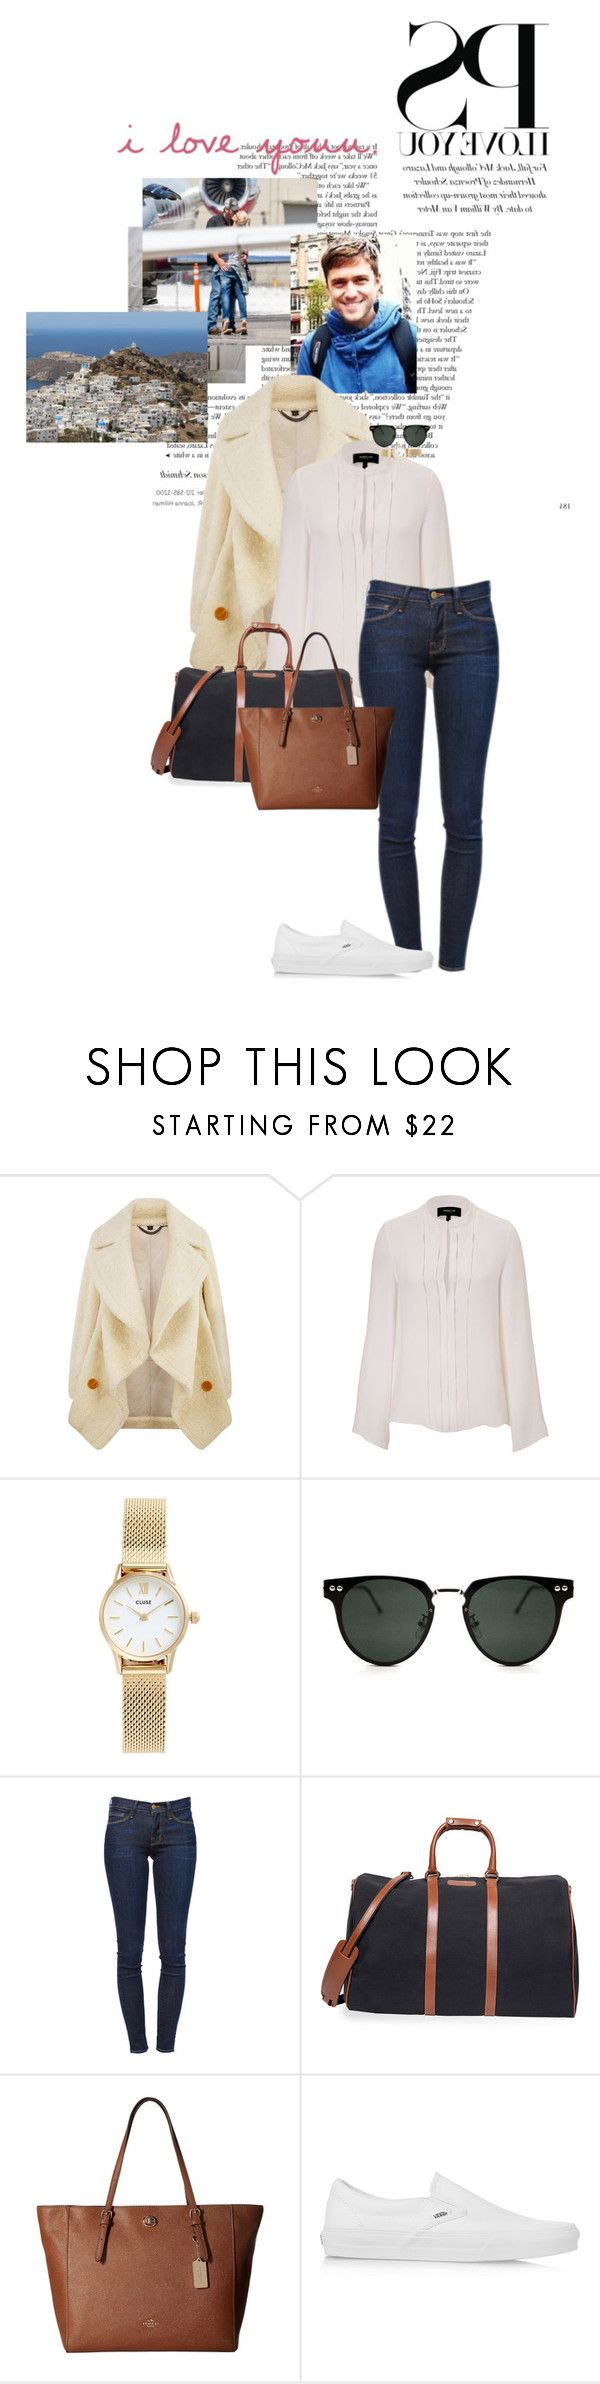 """""""Arriving in Greece with Andrew"""" by ladyeileen ❤ liked on Polyvore featuring Burberry, Derek Lam, CLUSE, Spitfire, Frame, T. Anthony, Coach and Vans"""